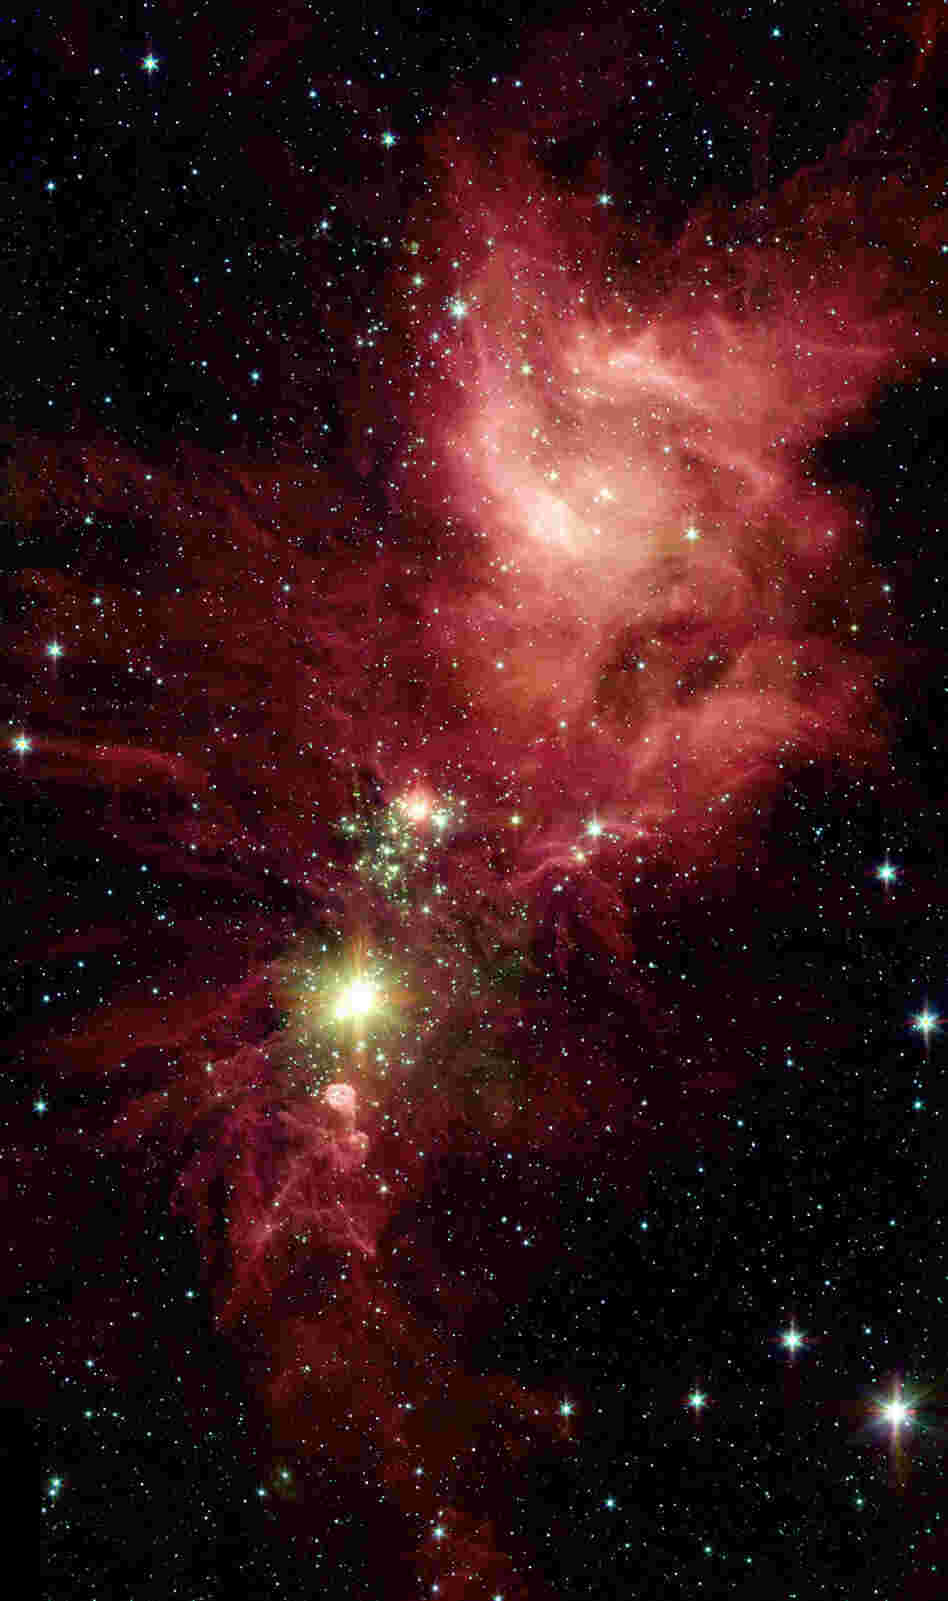 Newborn stars, hidden behind thick dust, are revealed in this image of a section of the Christmas Tree Cluster from NASA's Spitzer Space Telescope.